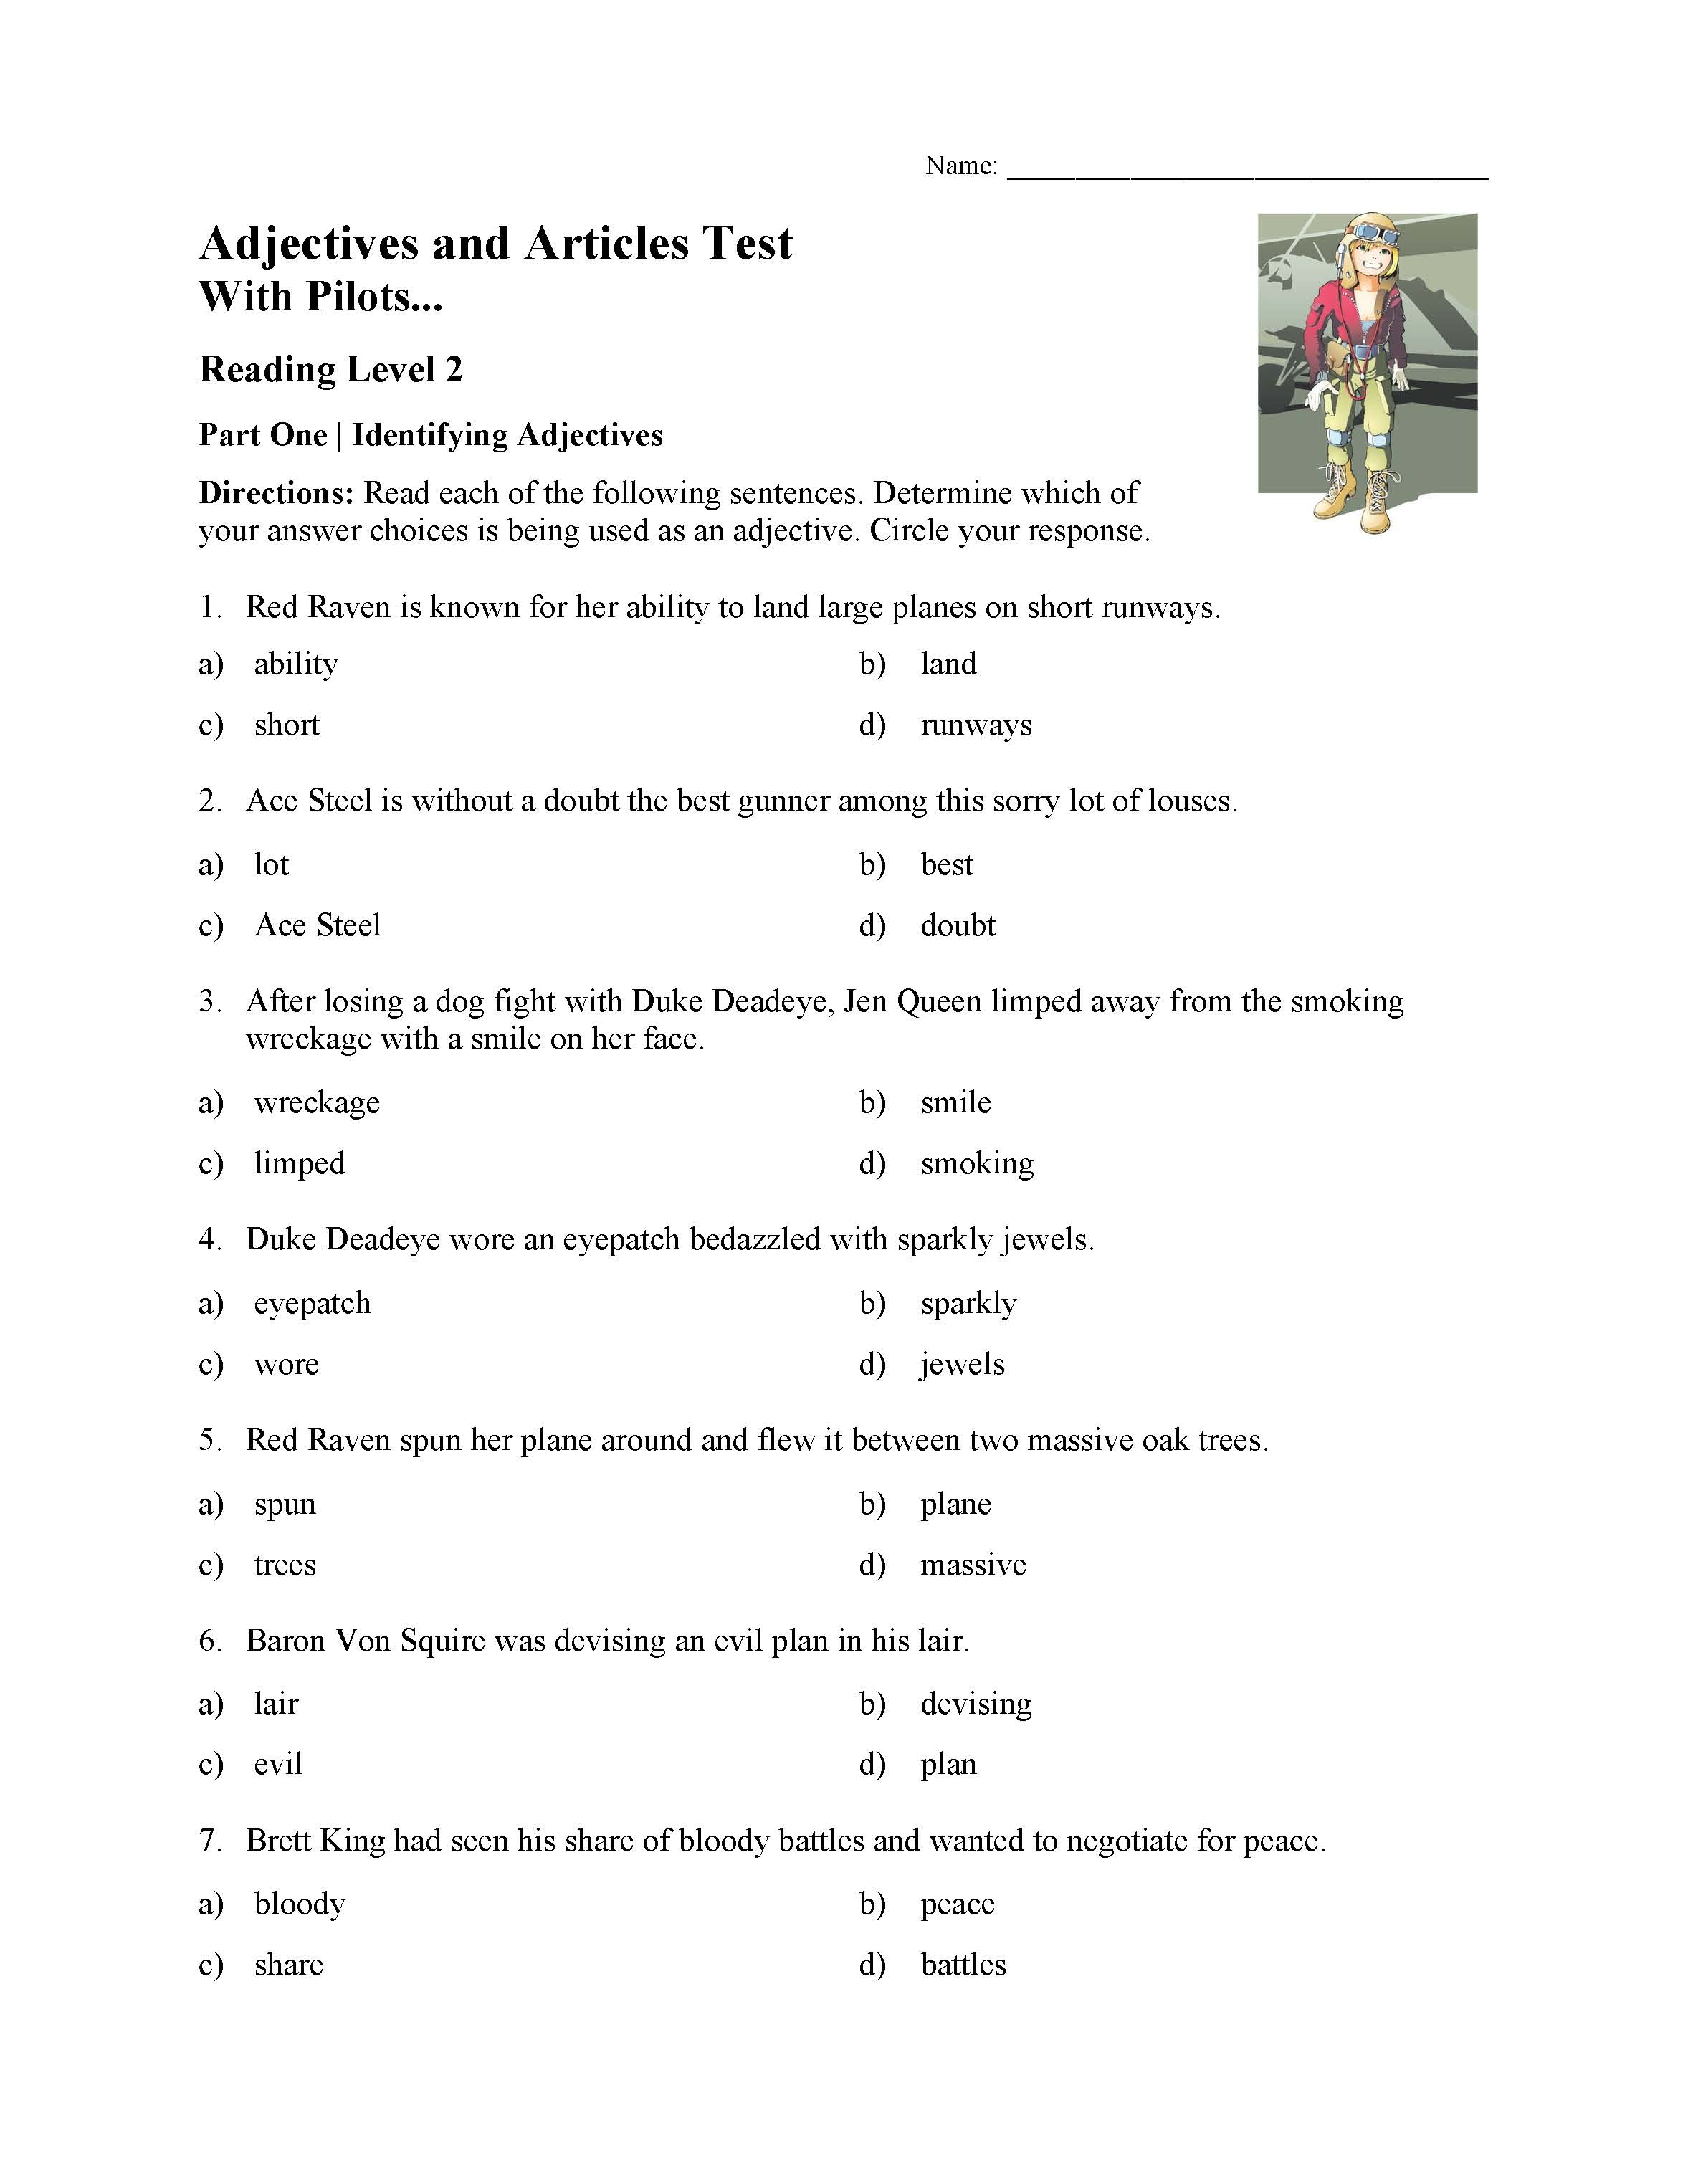 This is a preview image of the Adjectives and Articles Test With Pilots - Reading Level 2.